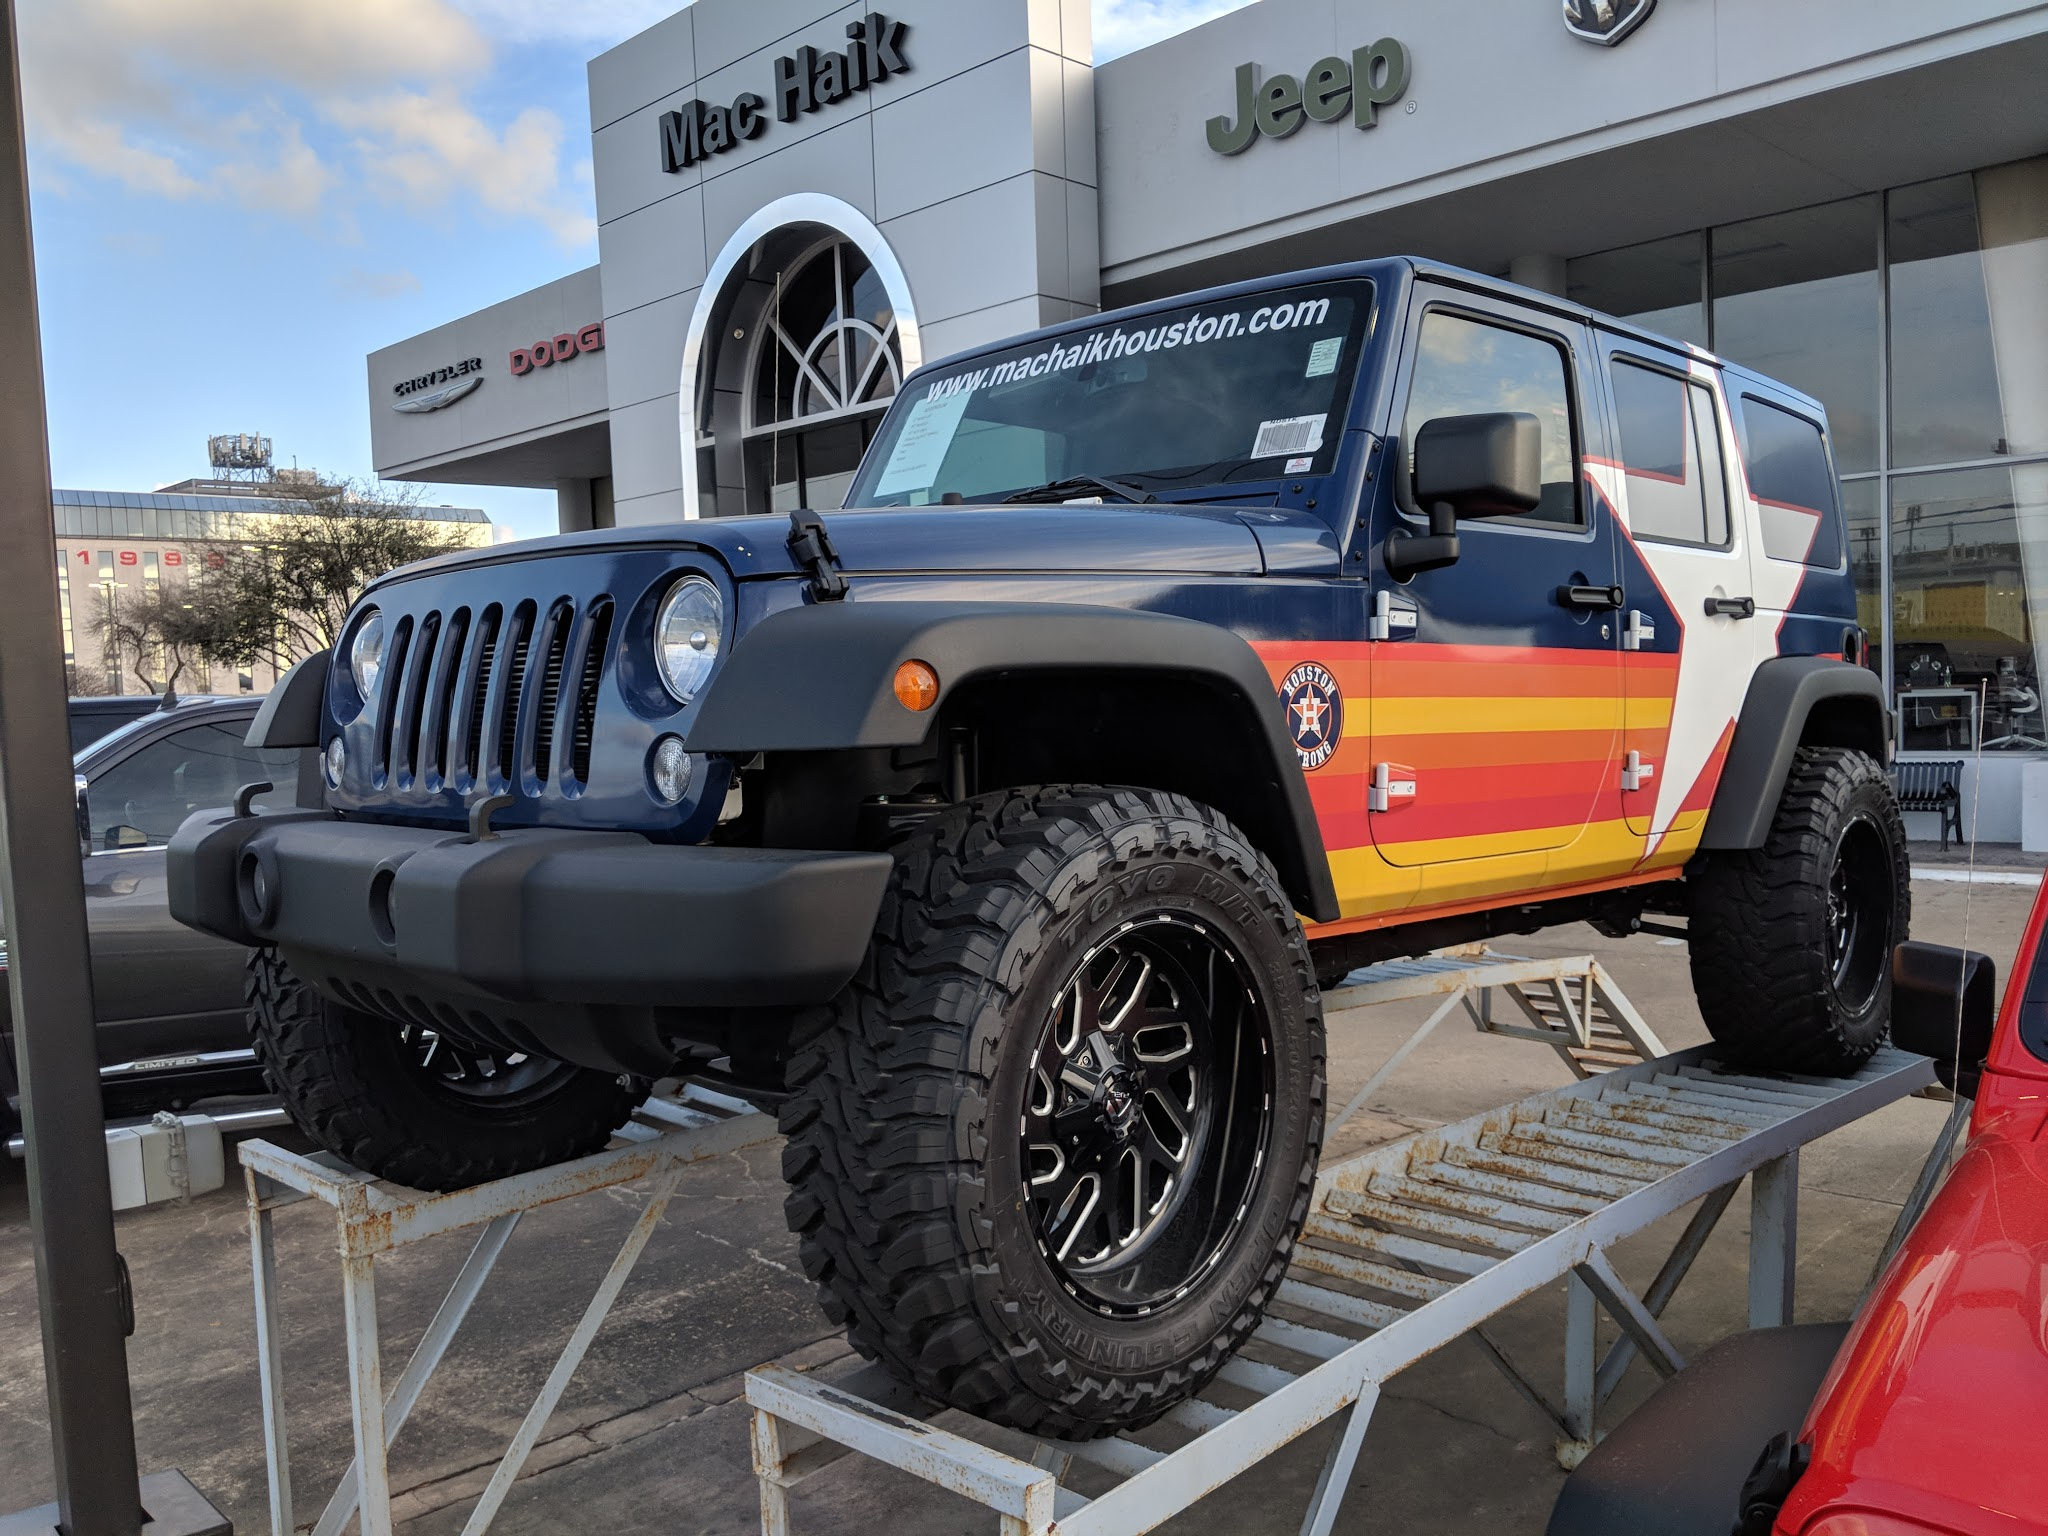 There is a custom Houston Astros Jeep at a Houston dealership that fans will love